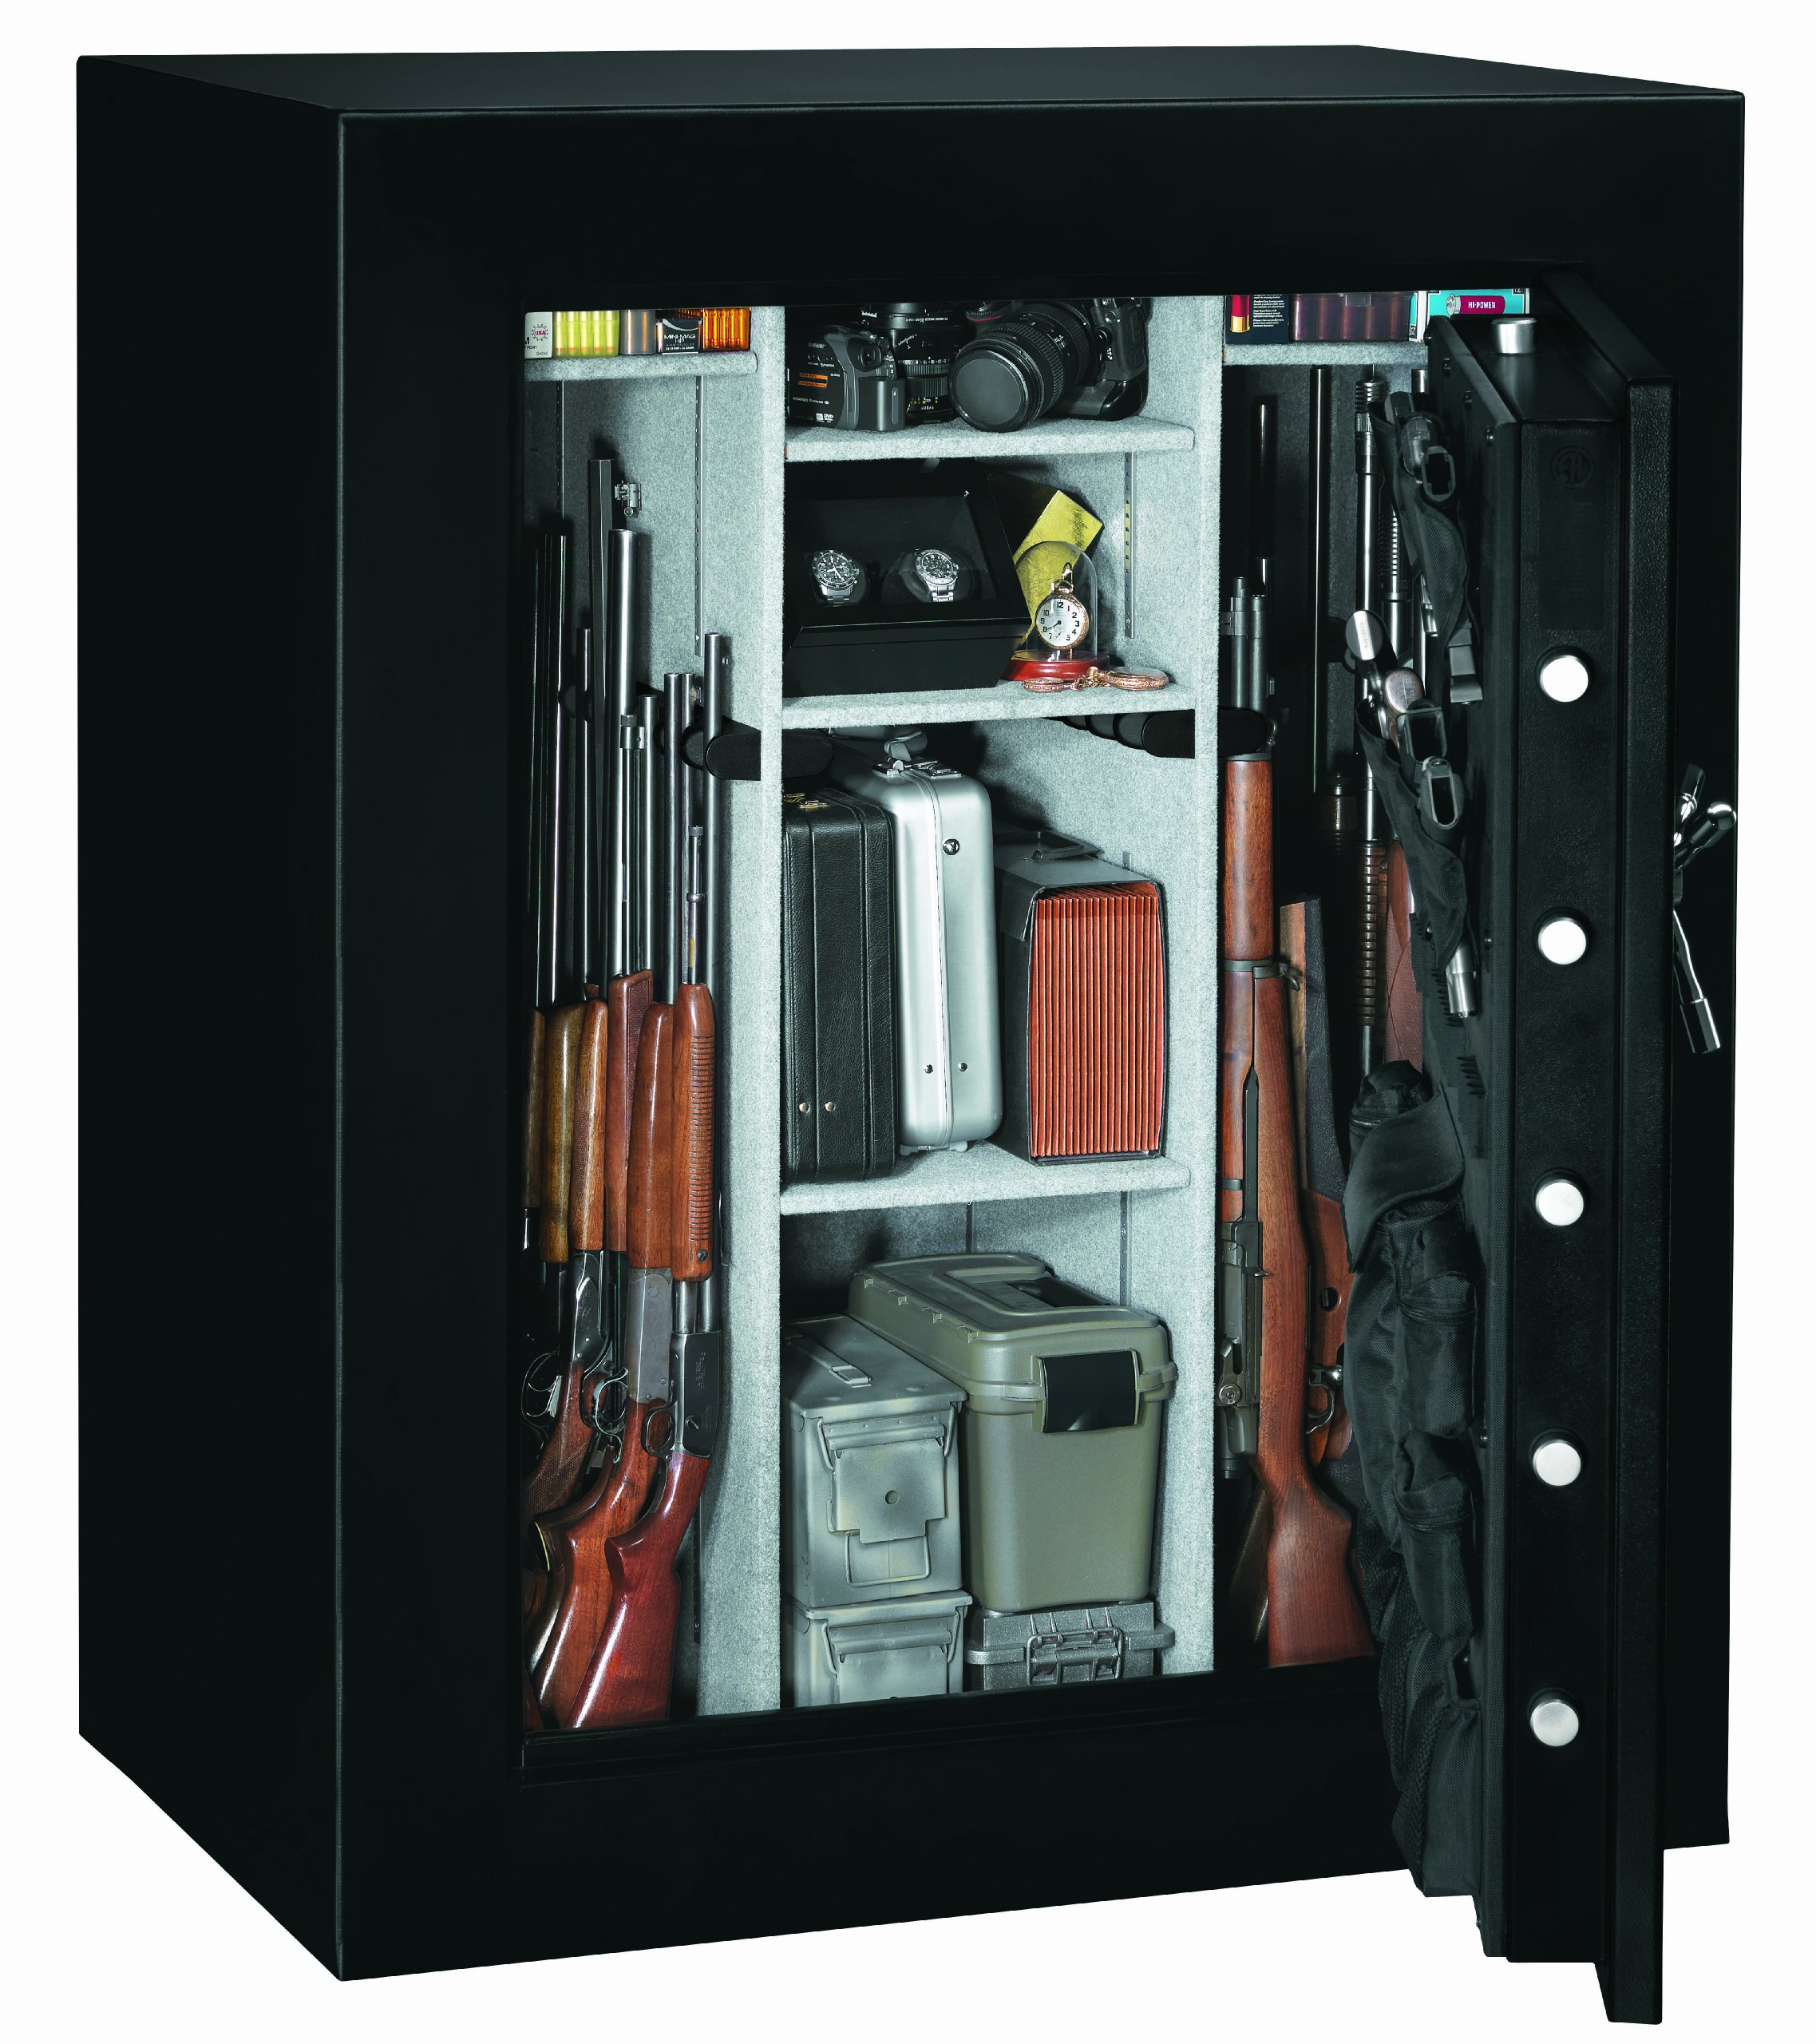 Stack-On E-66-MB-E-S Elite 66 Gun Security Safe with Door Storage, Electronic Lock, Matte Black by Stack-On (Image #2)